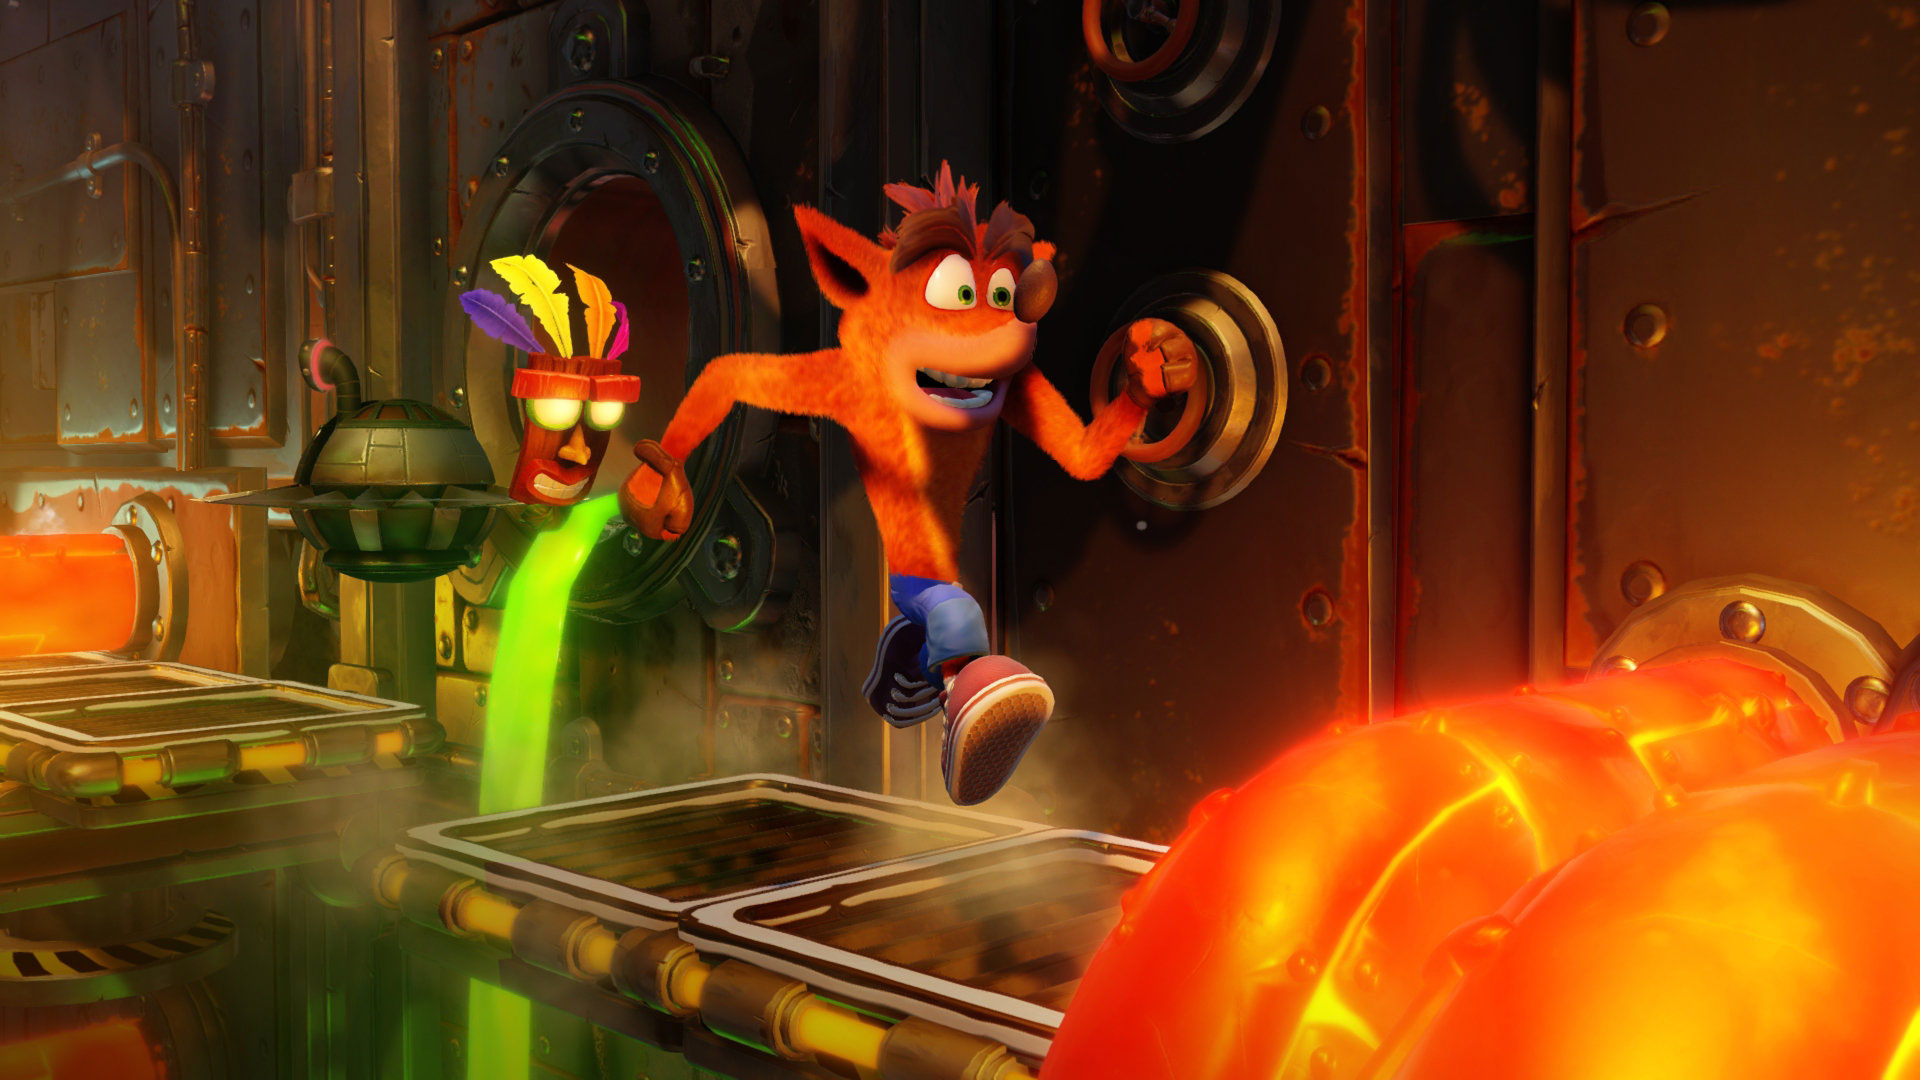 Crash Bandicoot could spin onto mobile